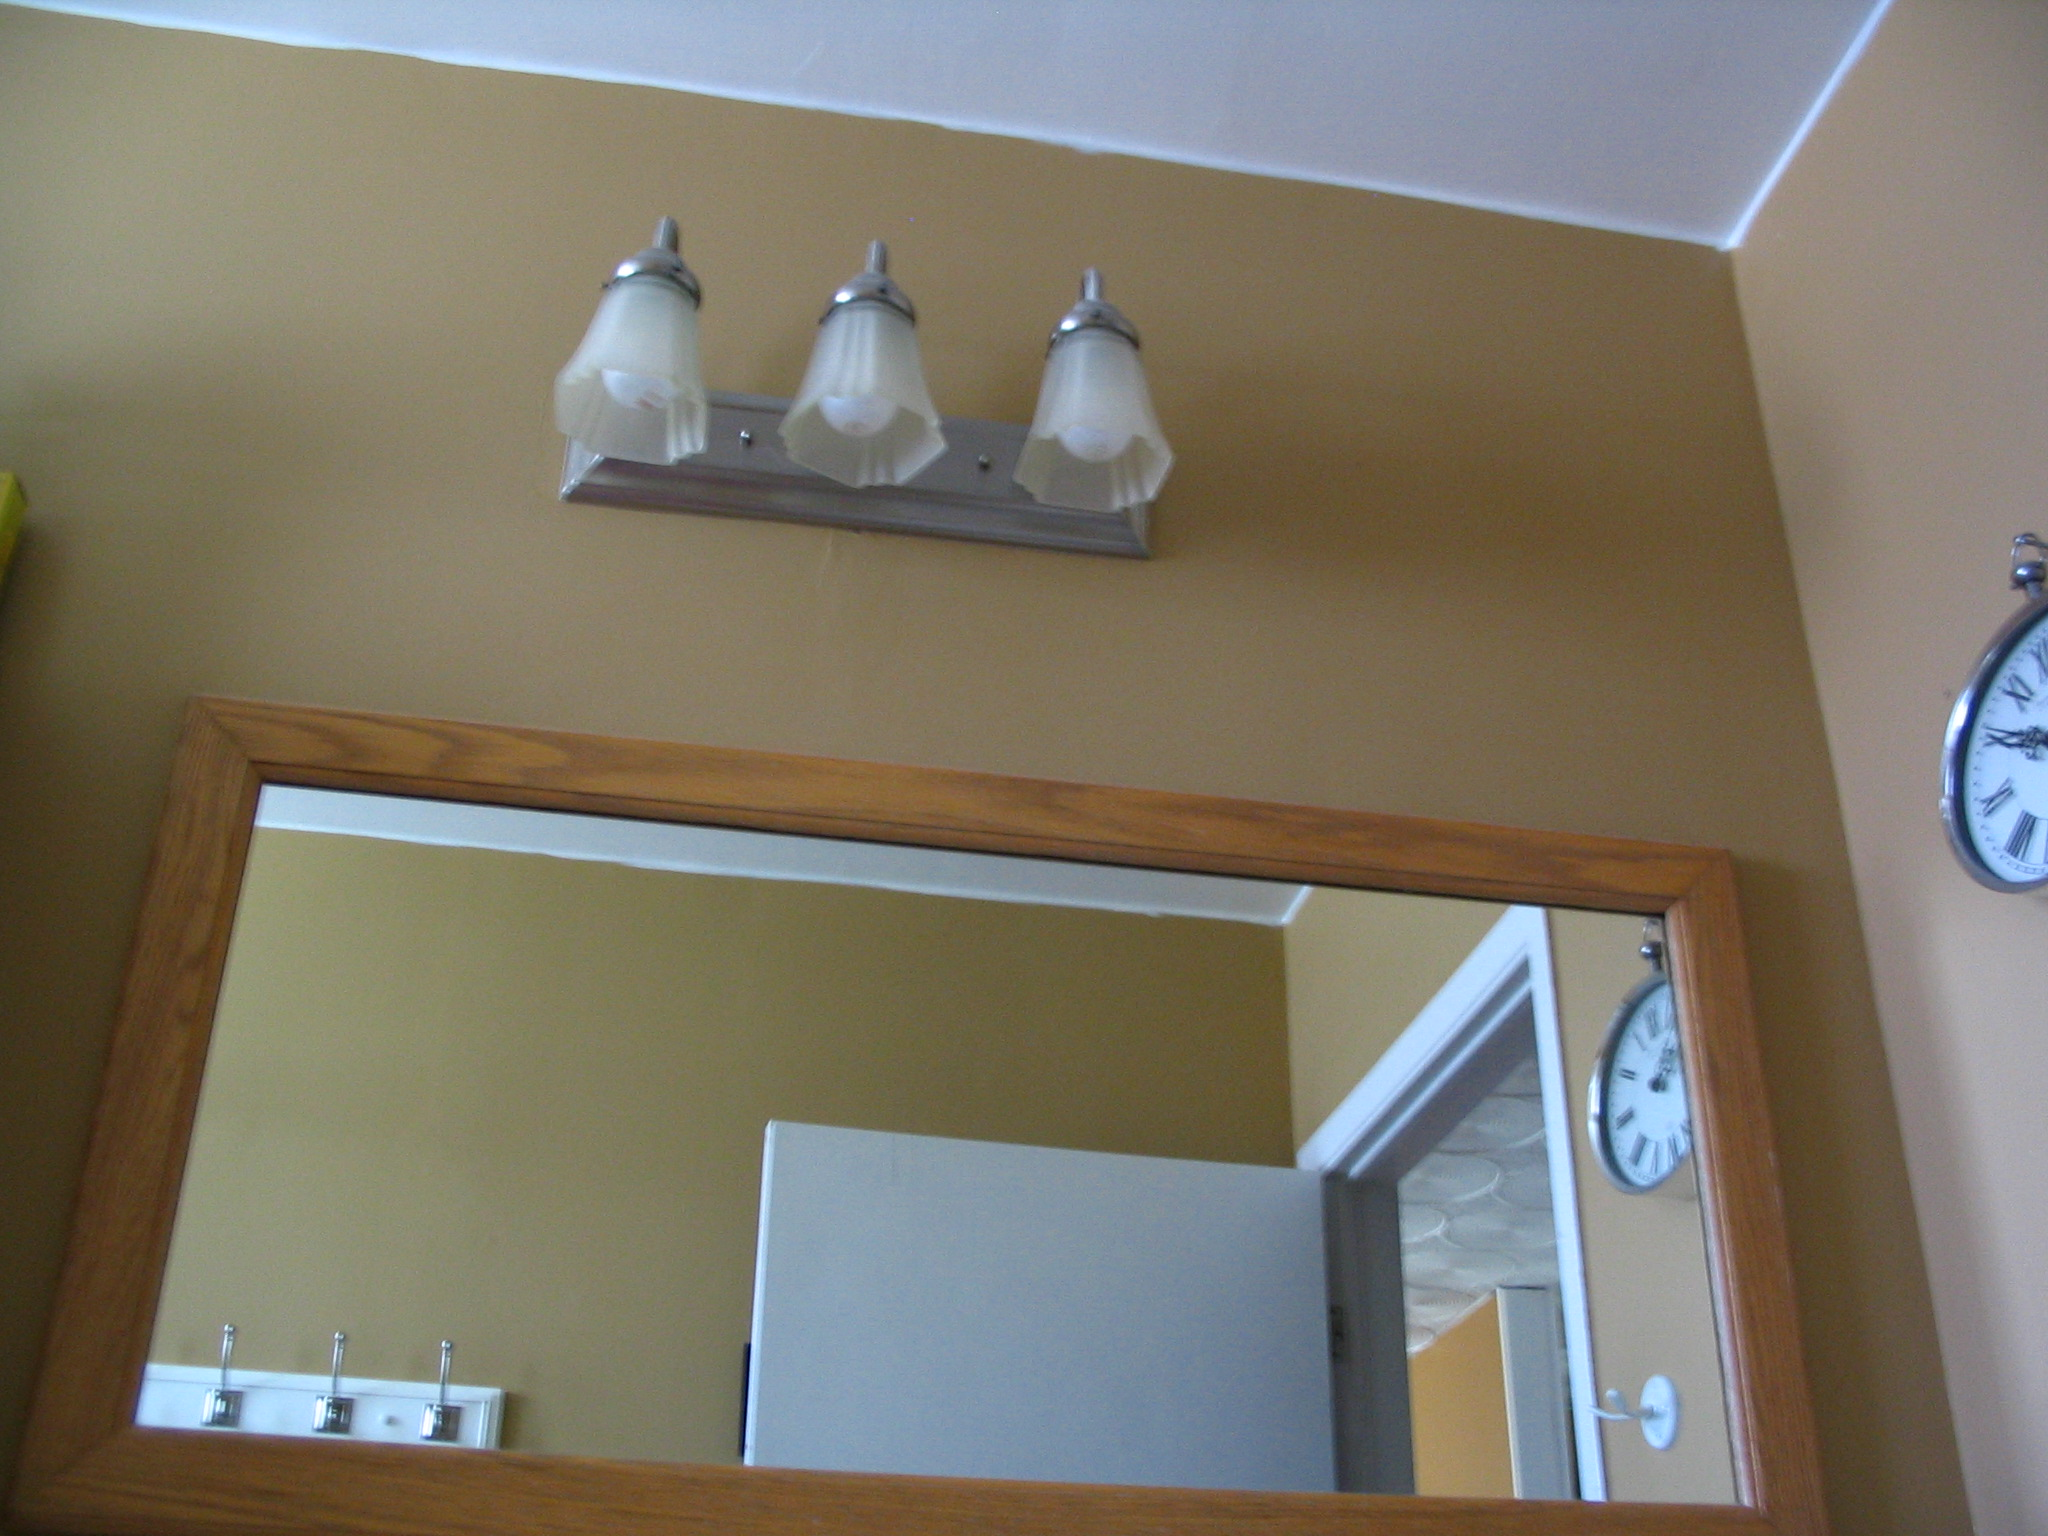 Vanity Lights Off Center : Bathroom Light Fixture Off Center - Bathroom Design